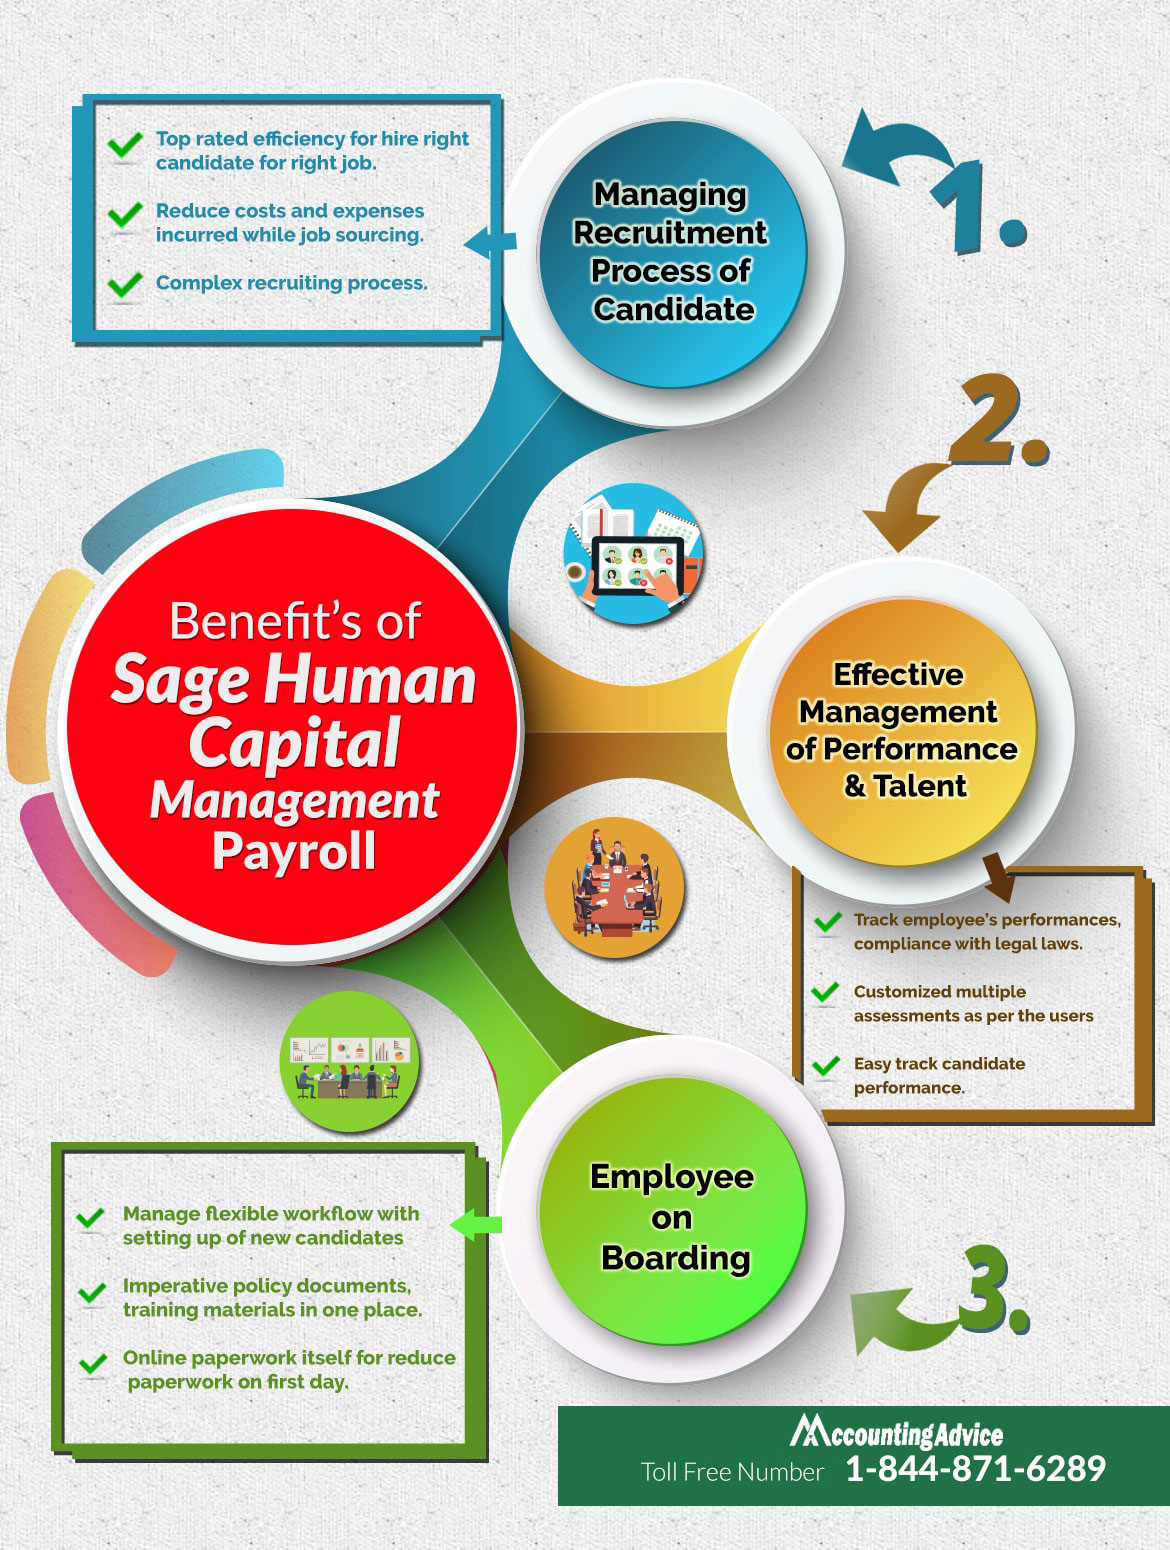 sage-human-capital-management-payroll-infographic